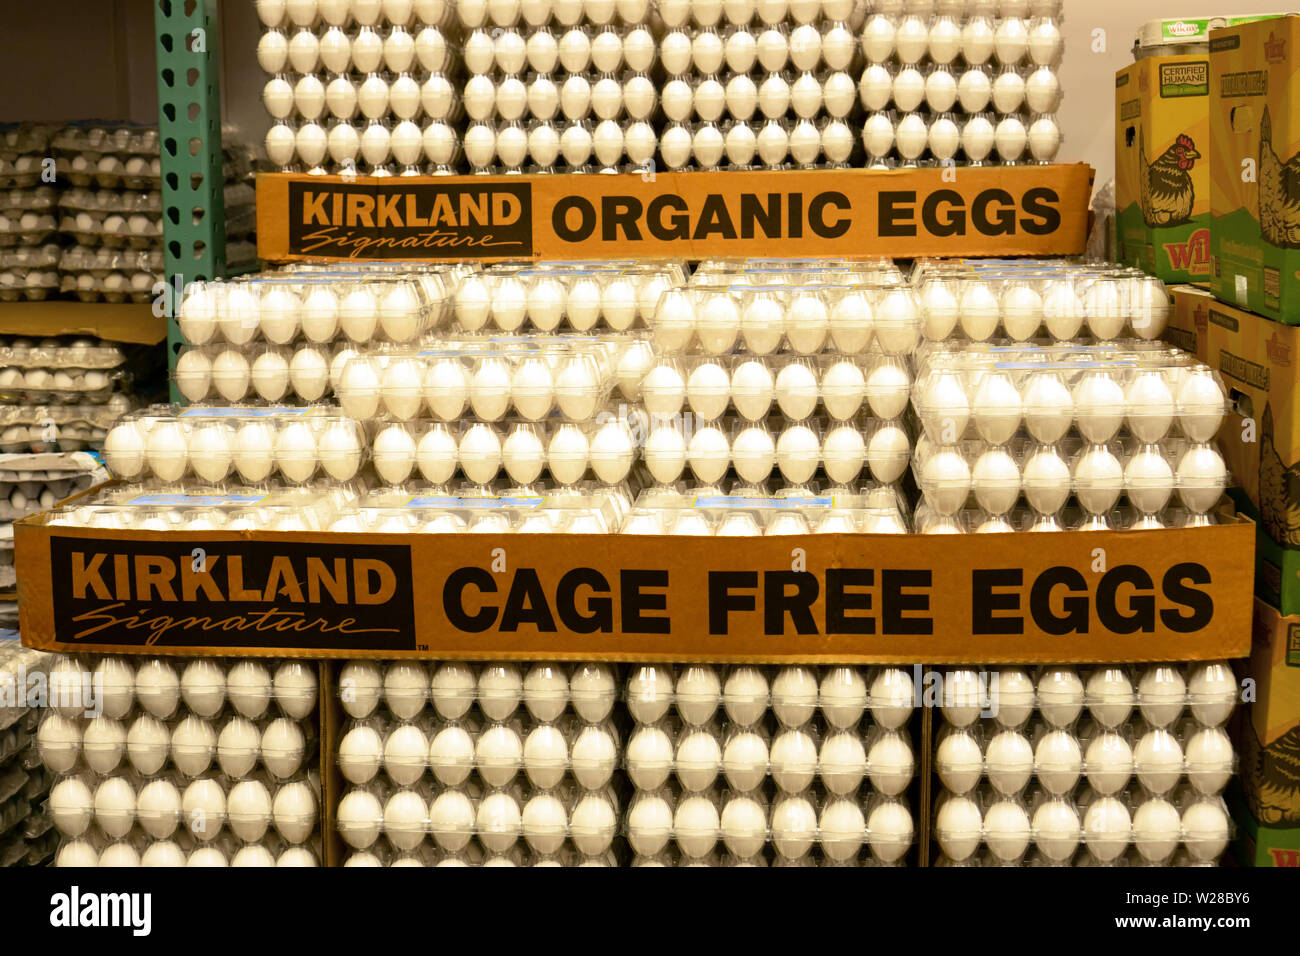 Seattle WA April 16 2019. Dozens of cage free organic eggs at Costco, a large wholesale warehouse-type store. - Stock Image